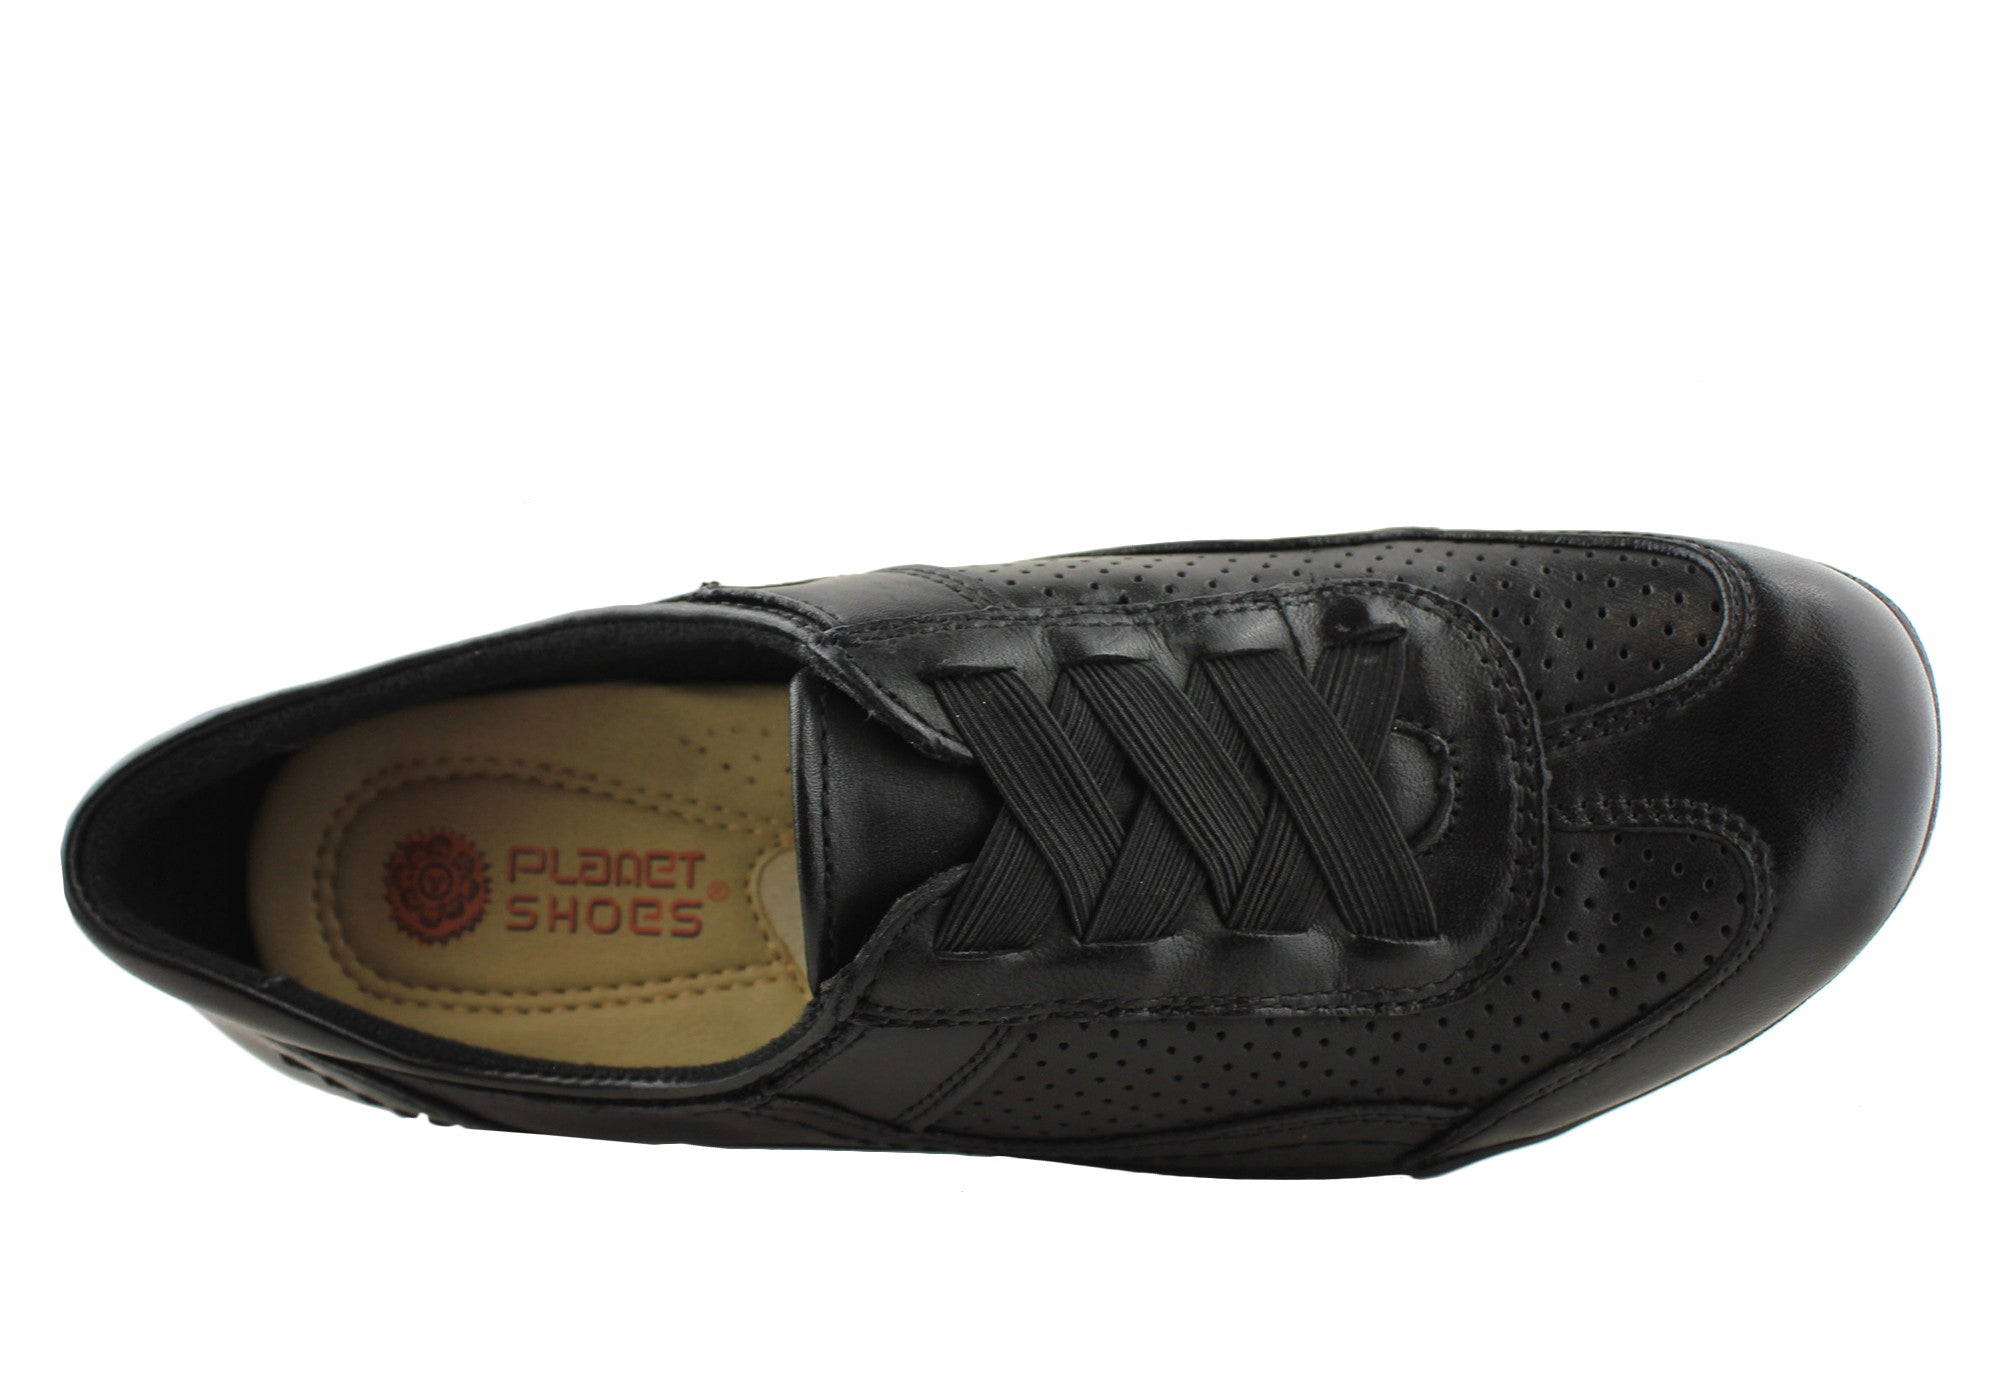 Planet Shoes Skete Womens Leather Comfortable Flats